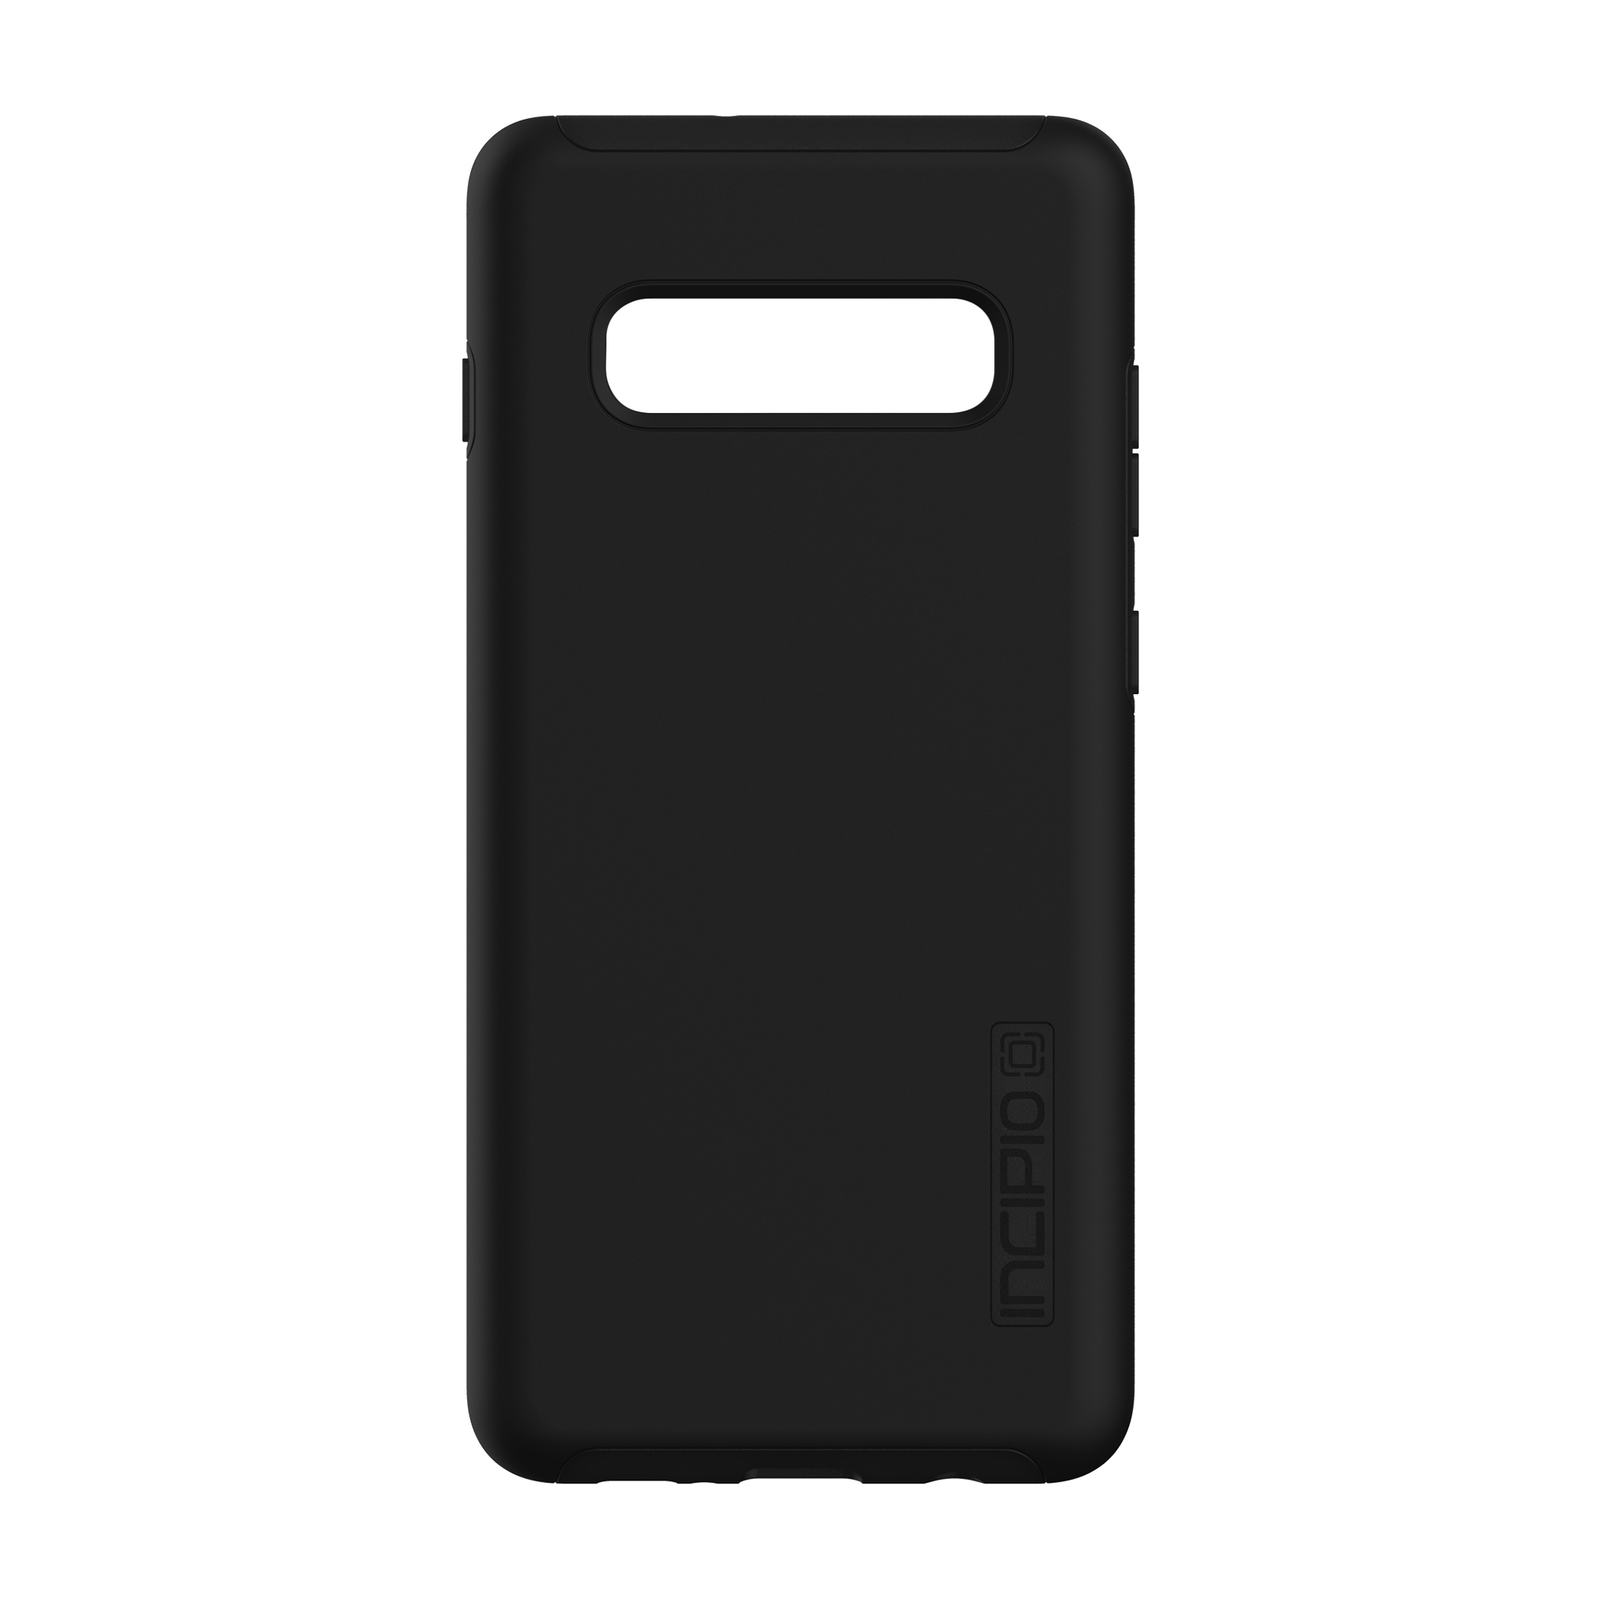 Incipio: DualPro for Galaxy S10+ - Black image